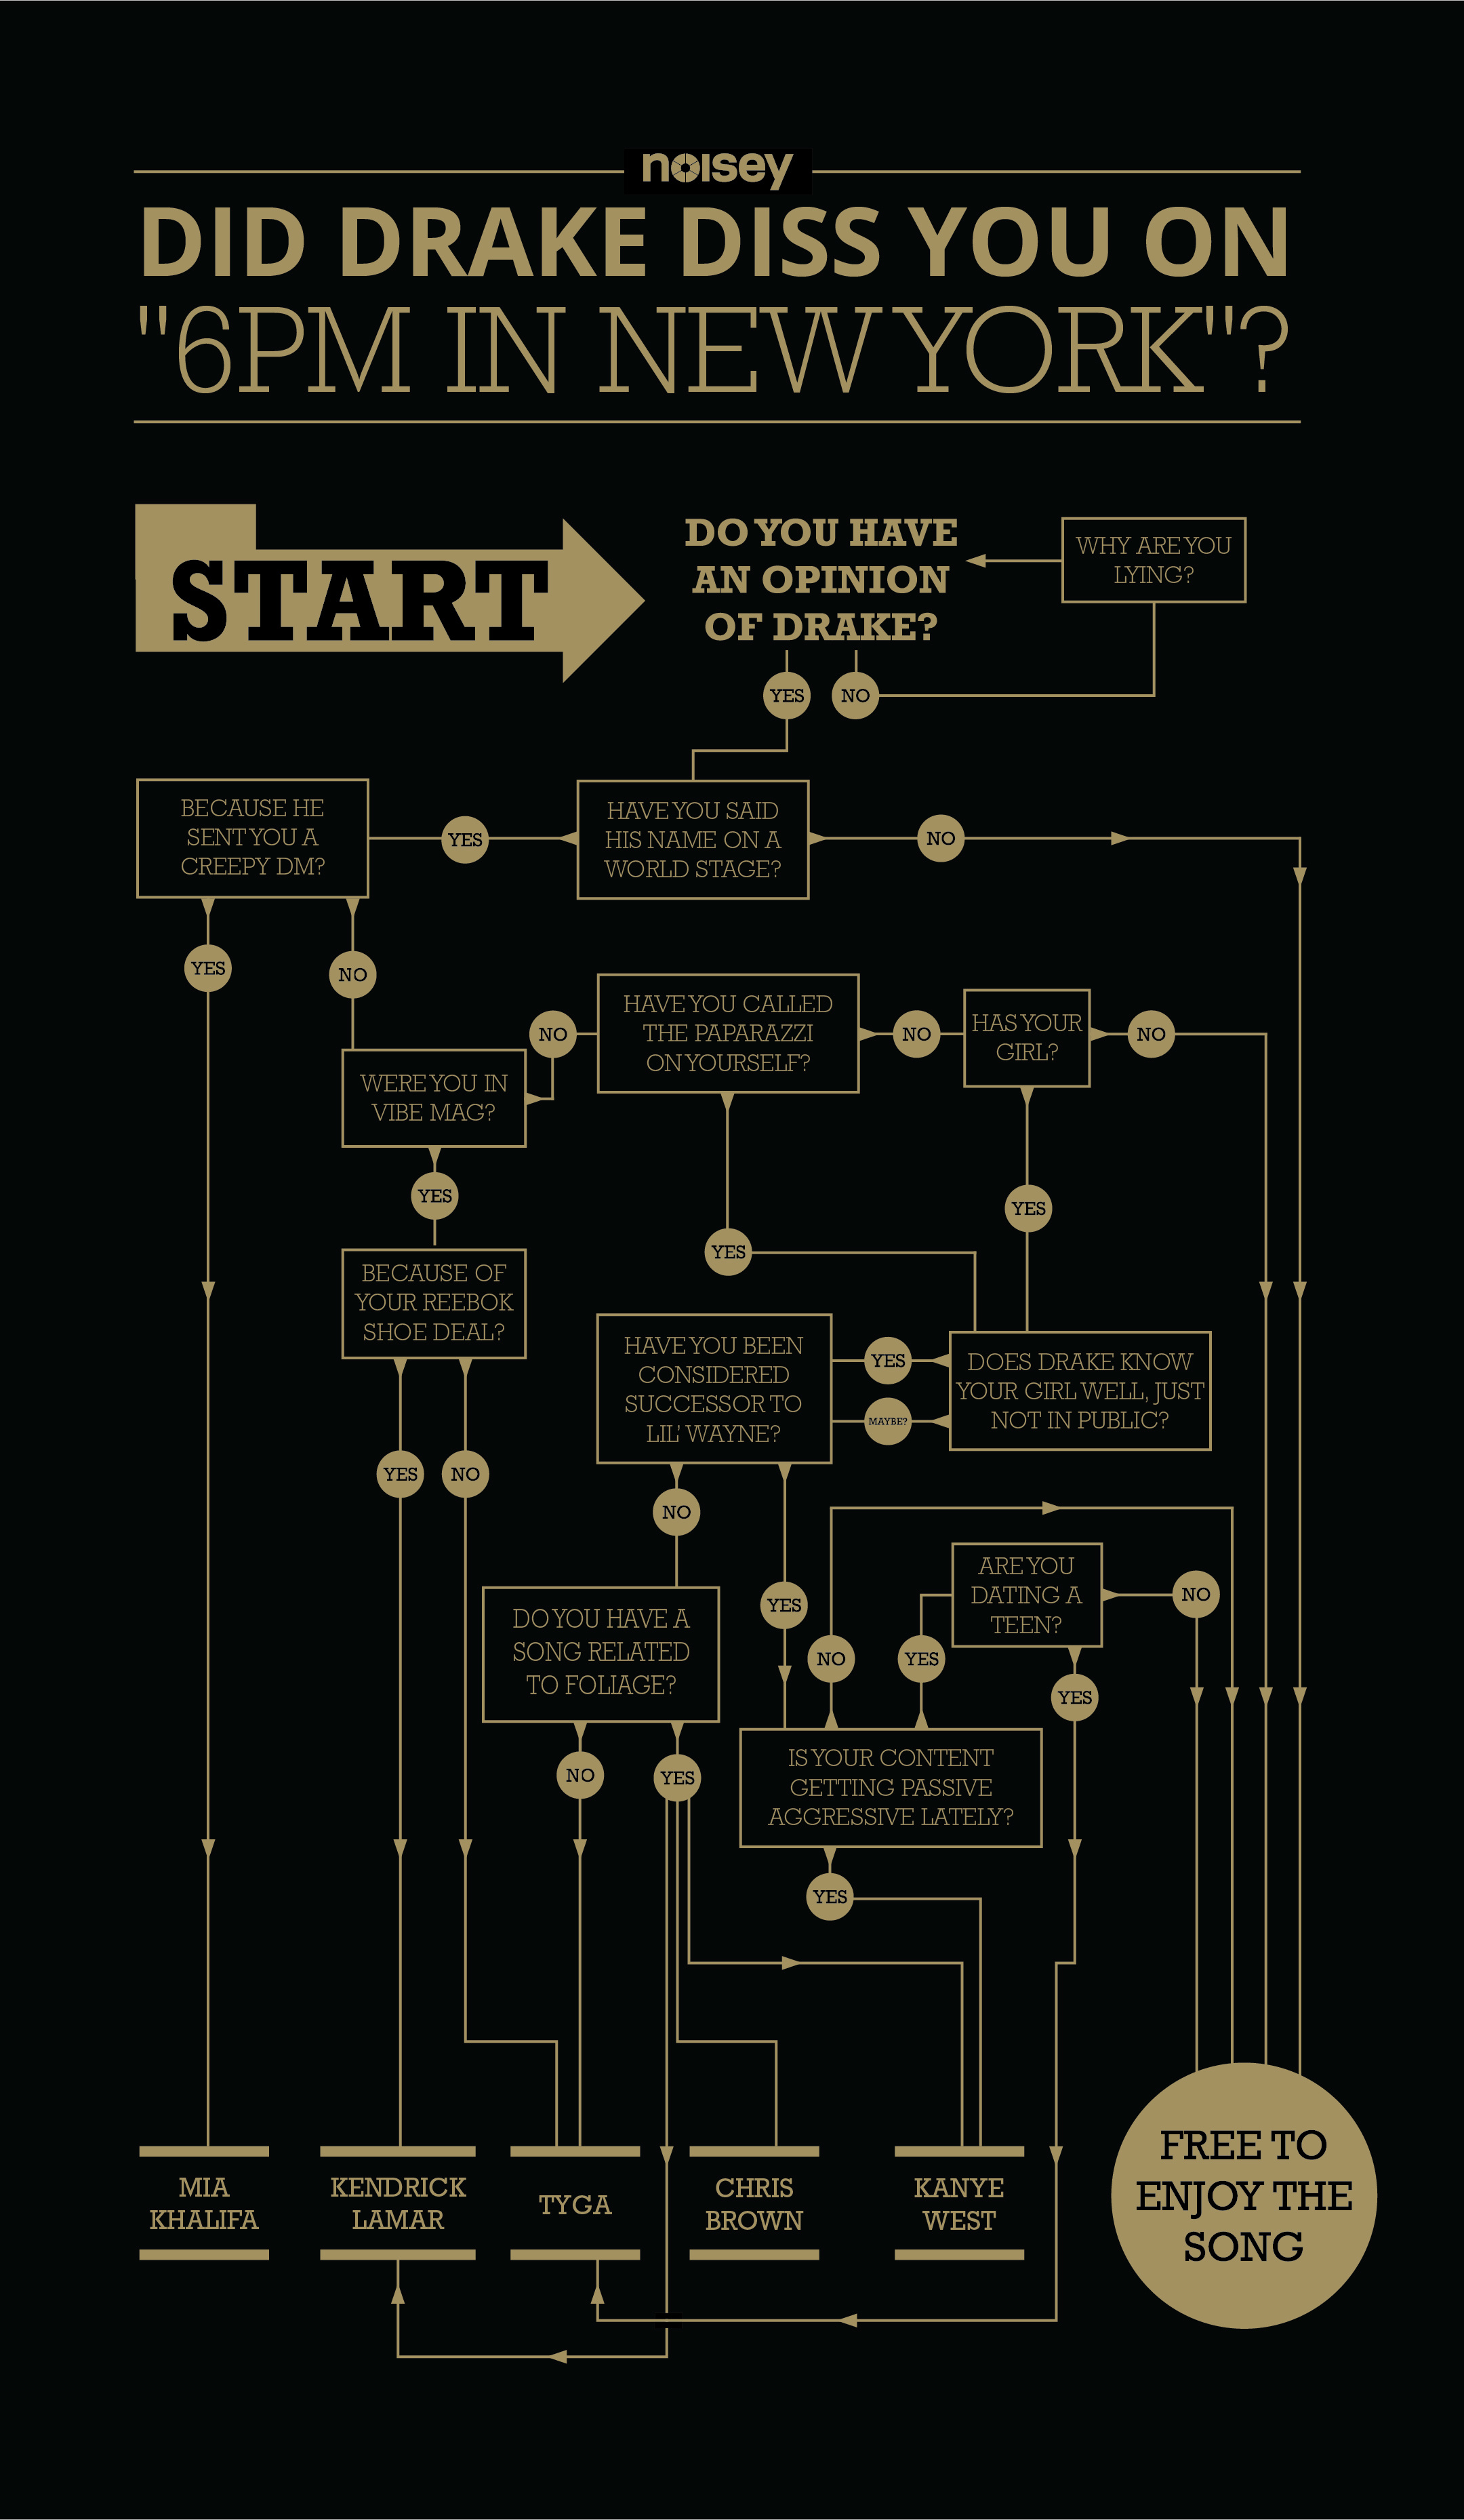 Noisey-DrakeFlowchart-Illustrator-v3-01